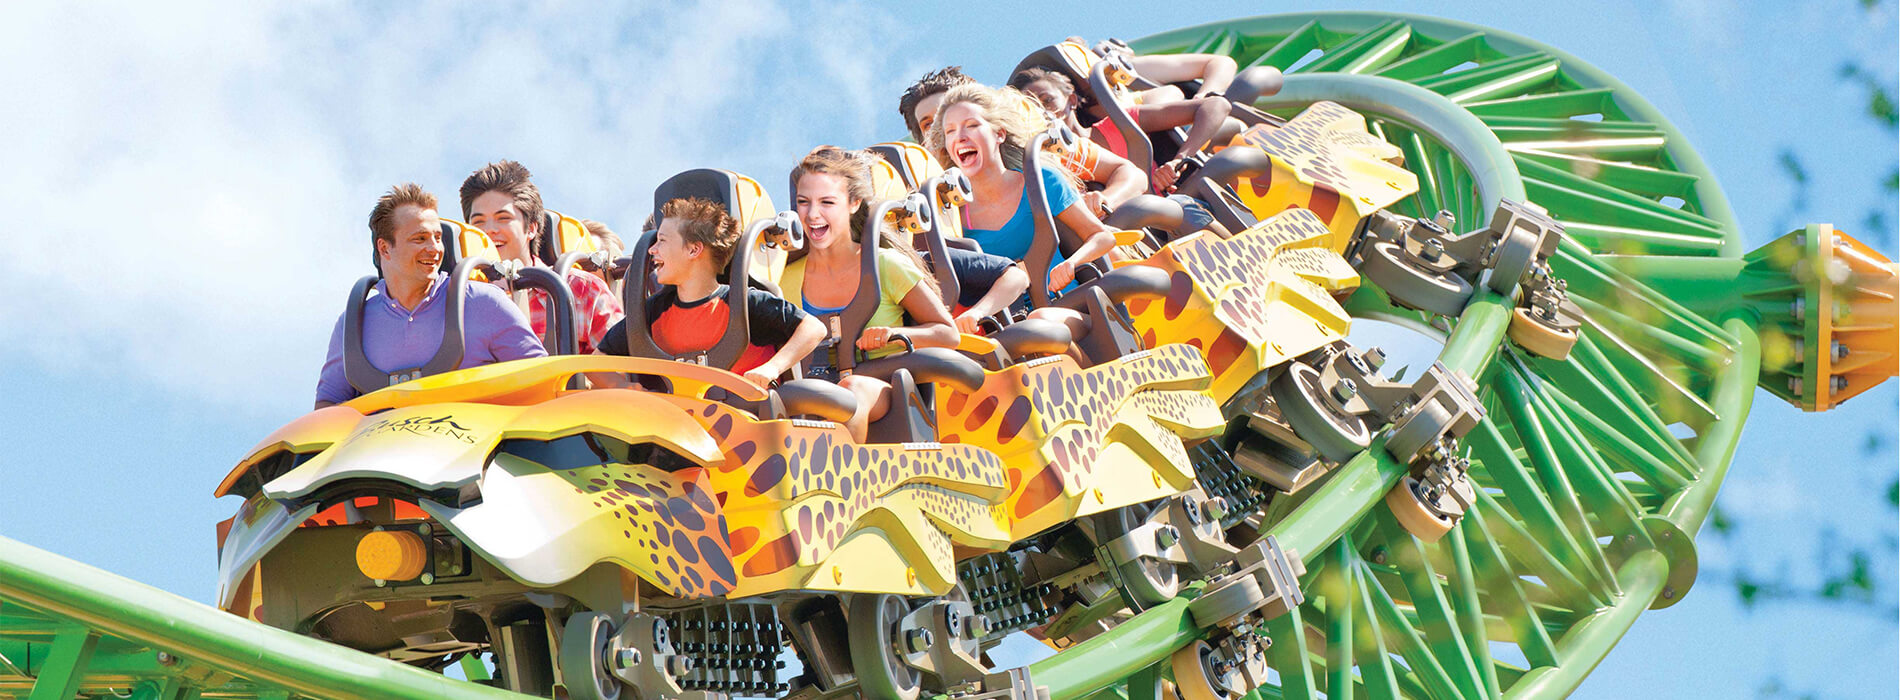 A crowd of people riding a yellow and green roller coaster at Busch Gardens Tampa Bay, located in Florida.